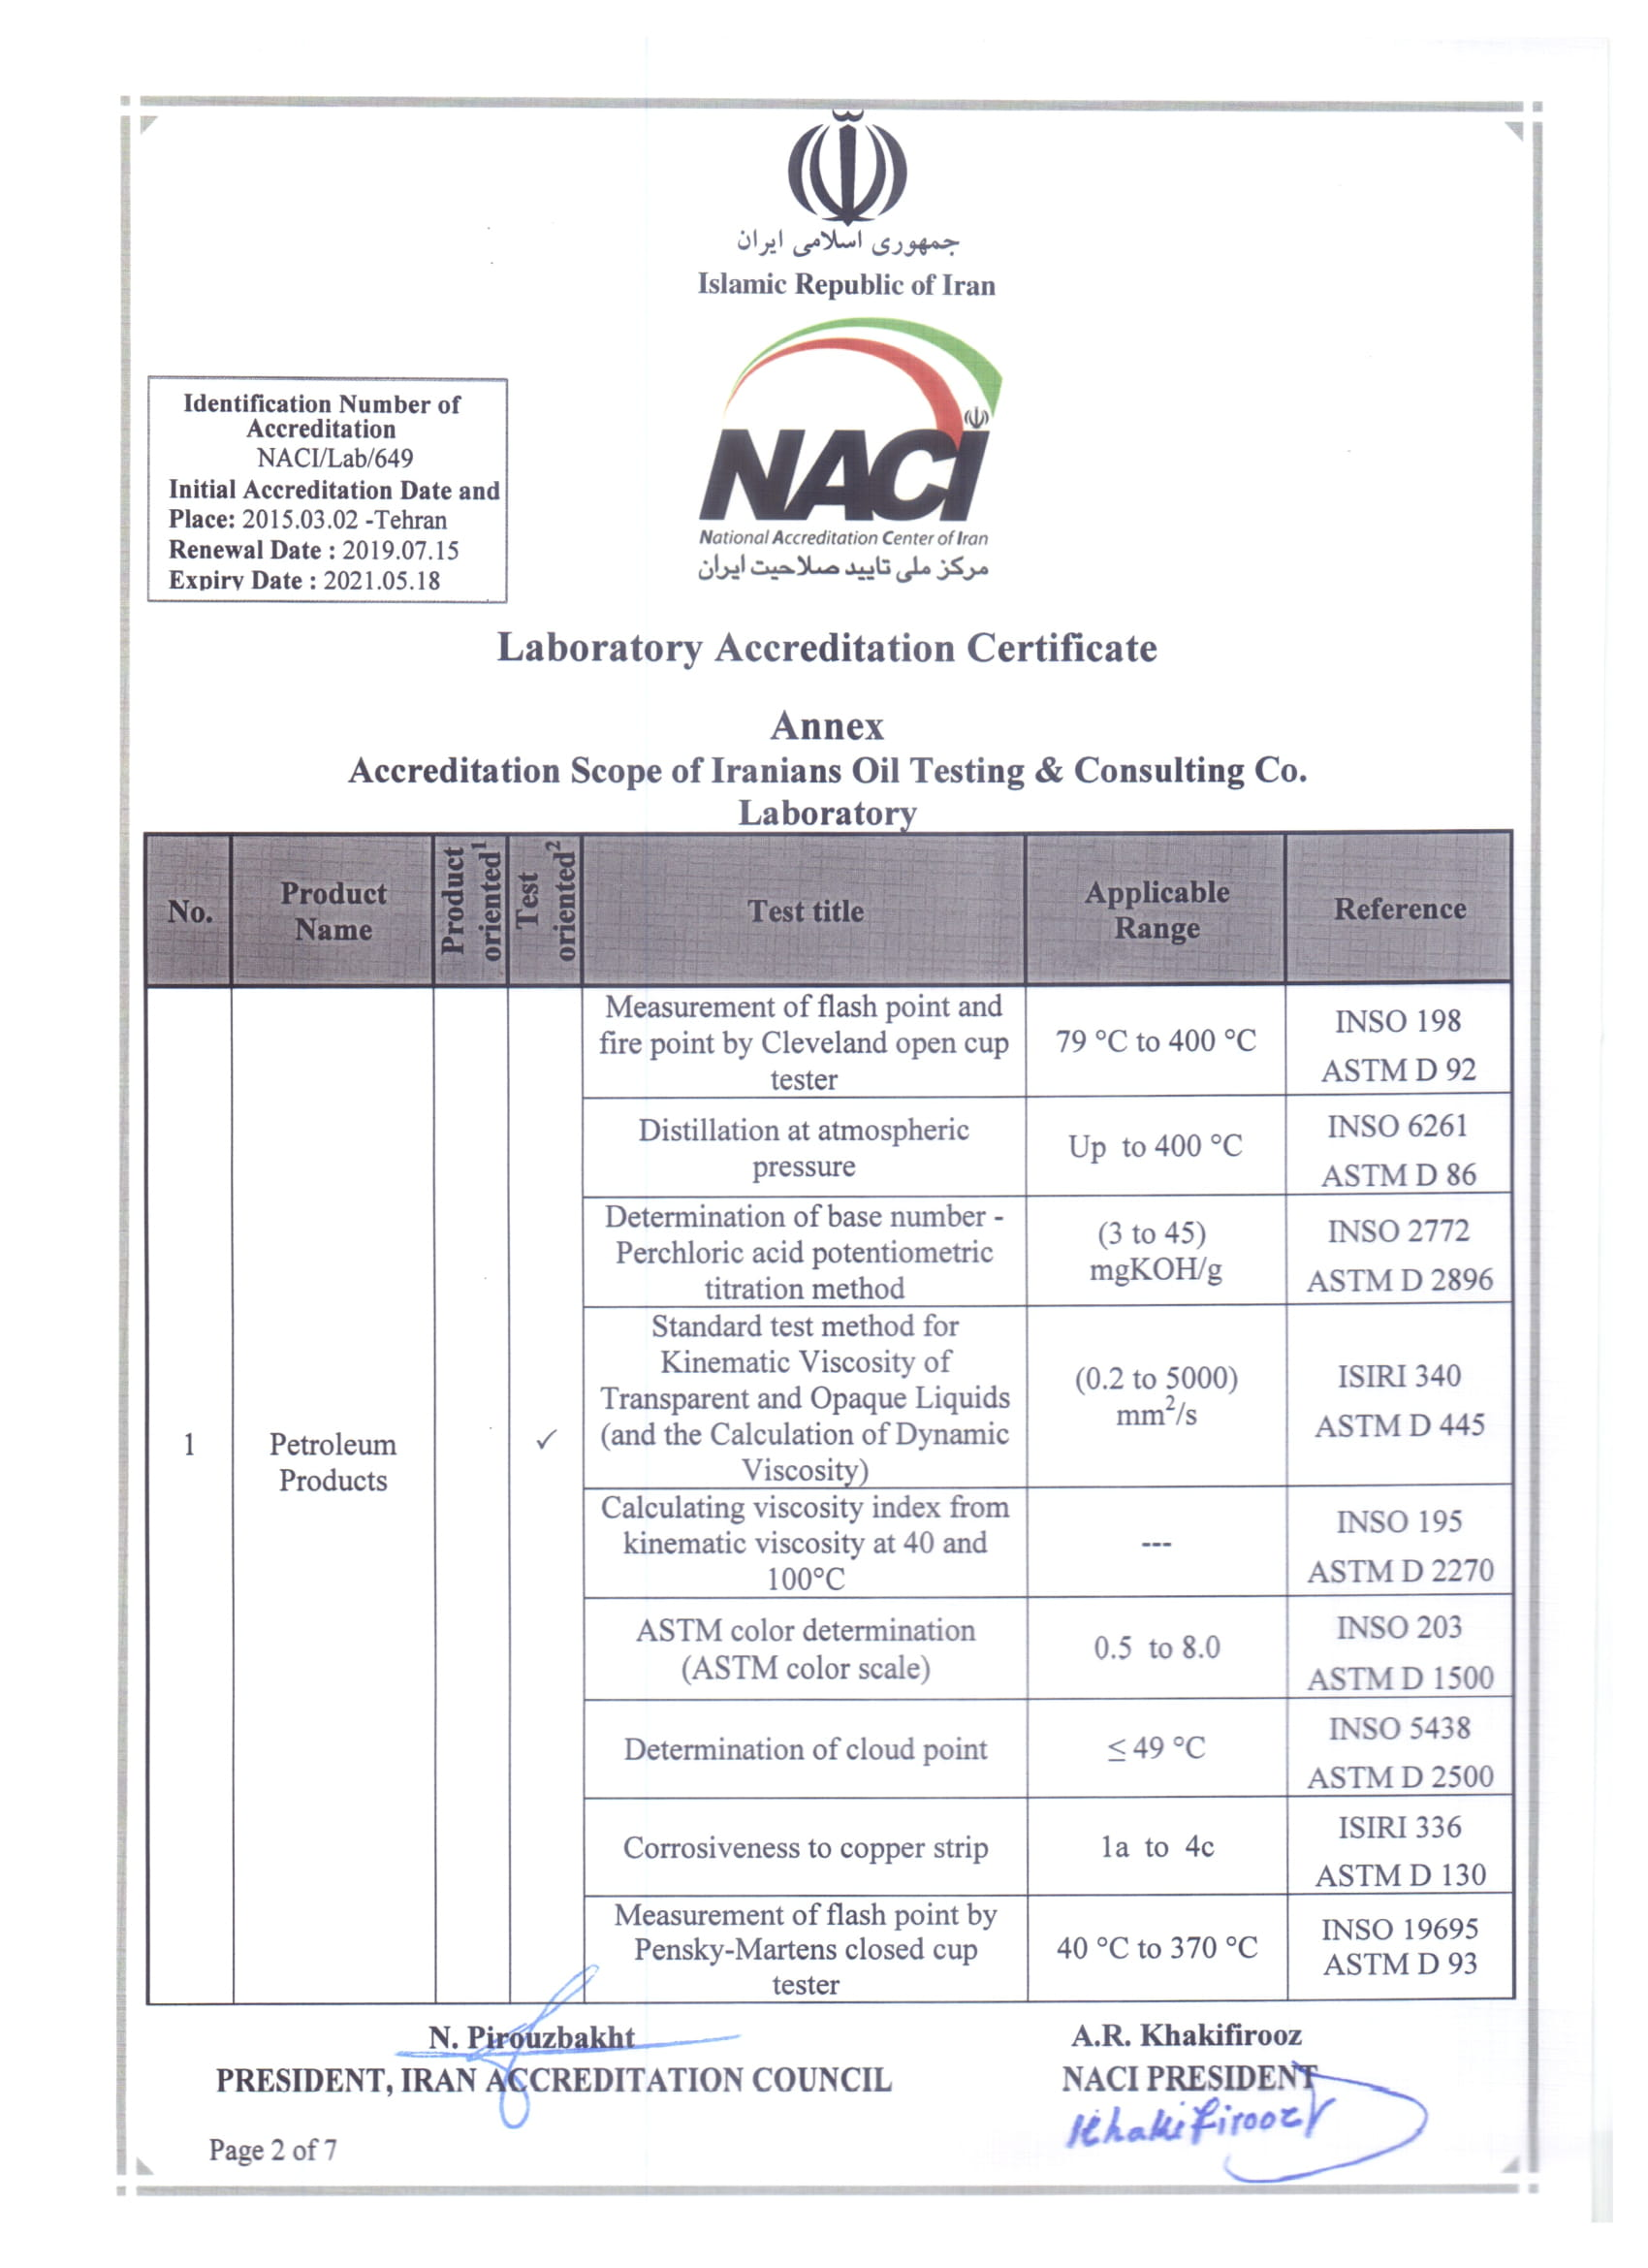 Laboratory Accreditation Certificate ISO/IEC 17025